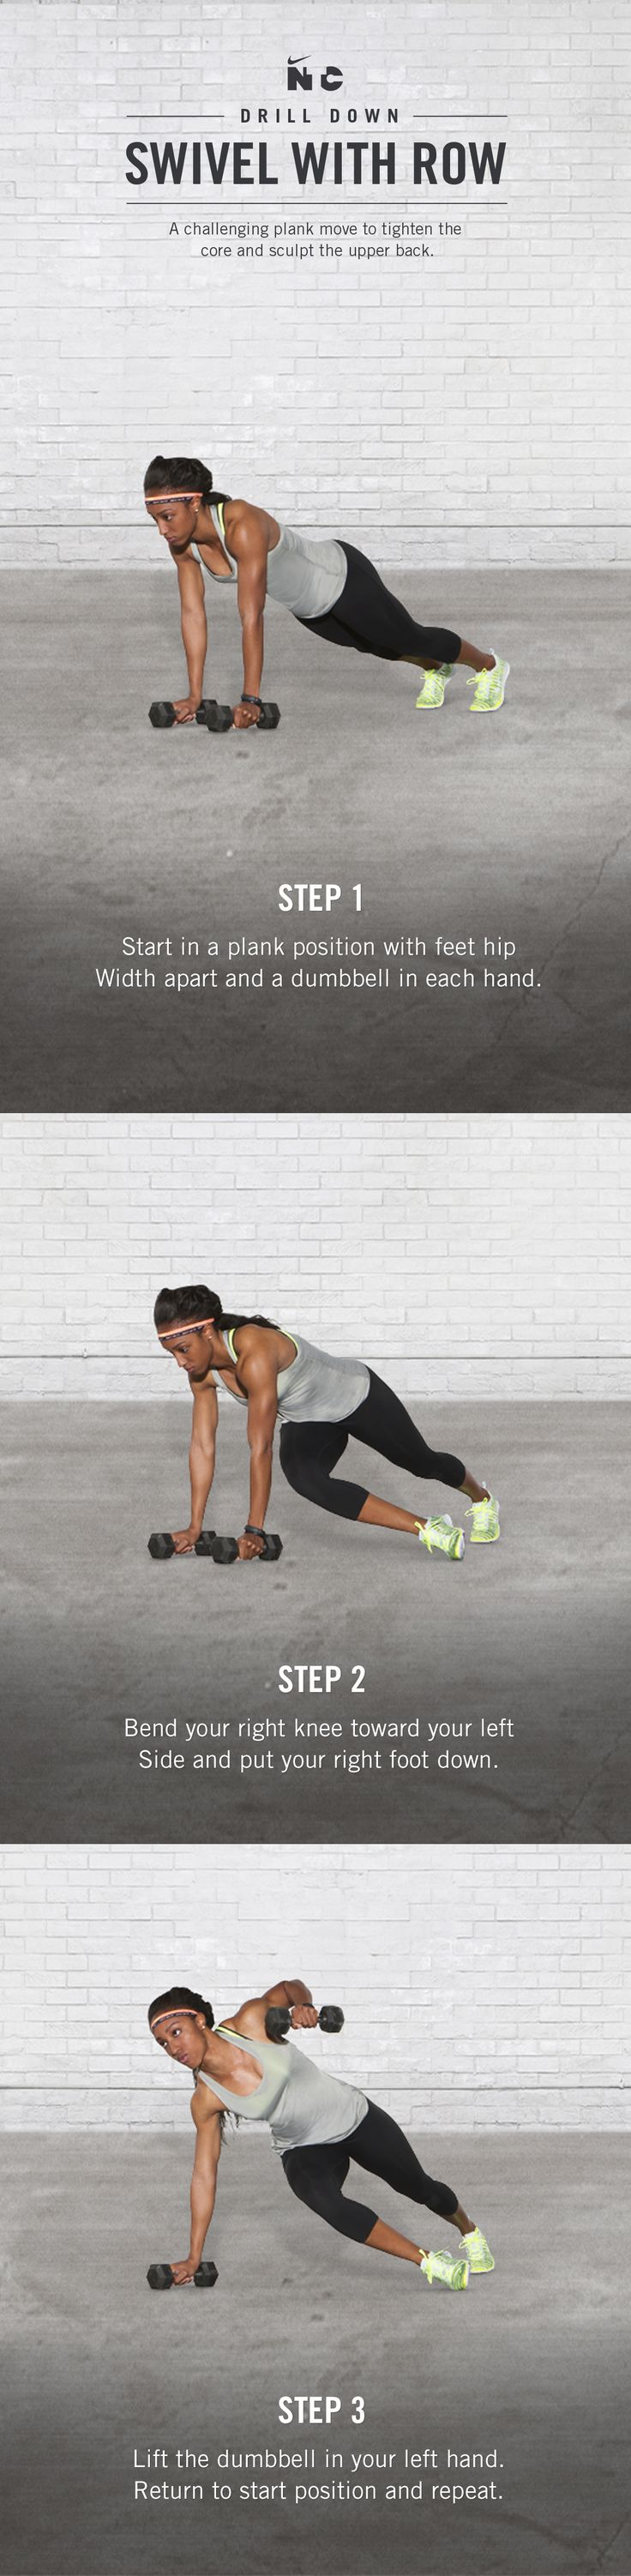 Train anytime, anywhere. Take your ab routine to the next level with the Swivel with Row drill in Brianna Rollins' Race Ready workout on Nike+ Training Club.